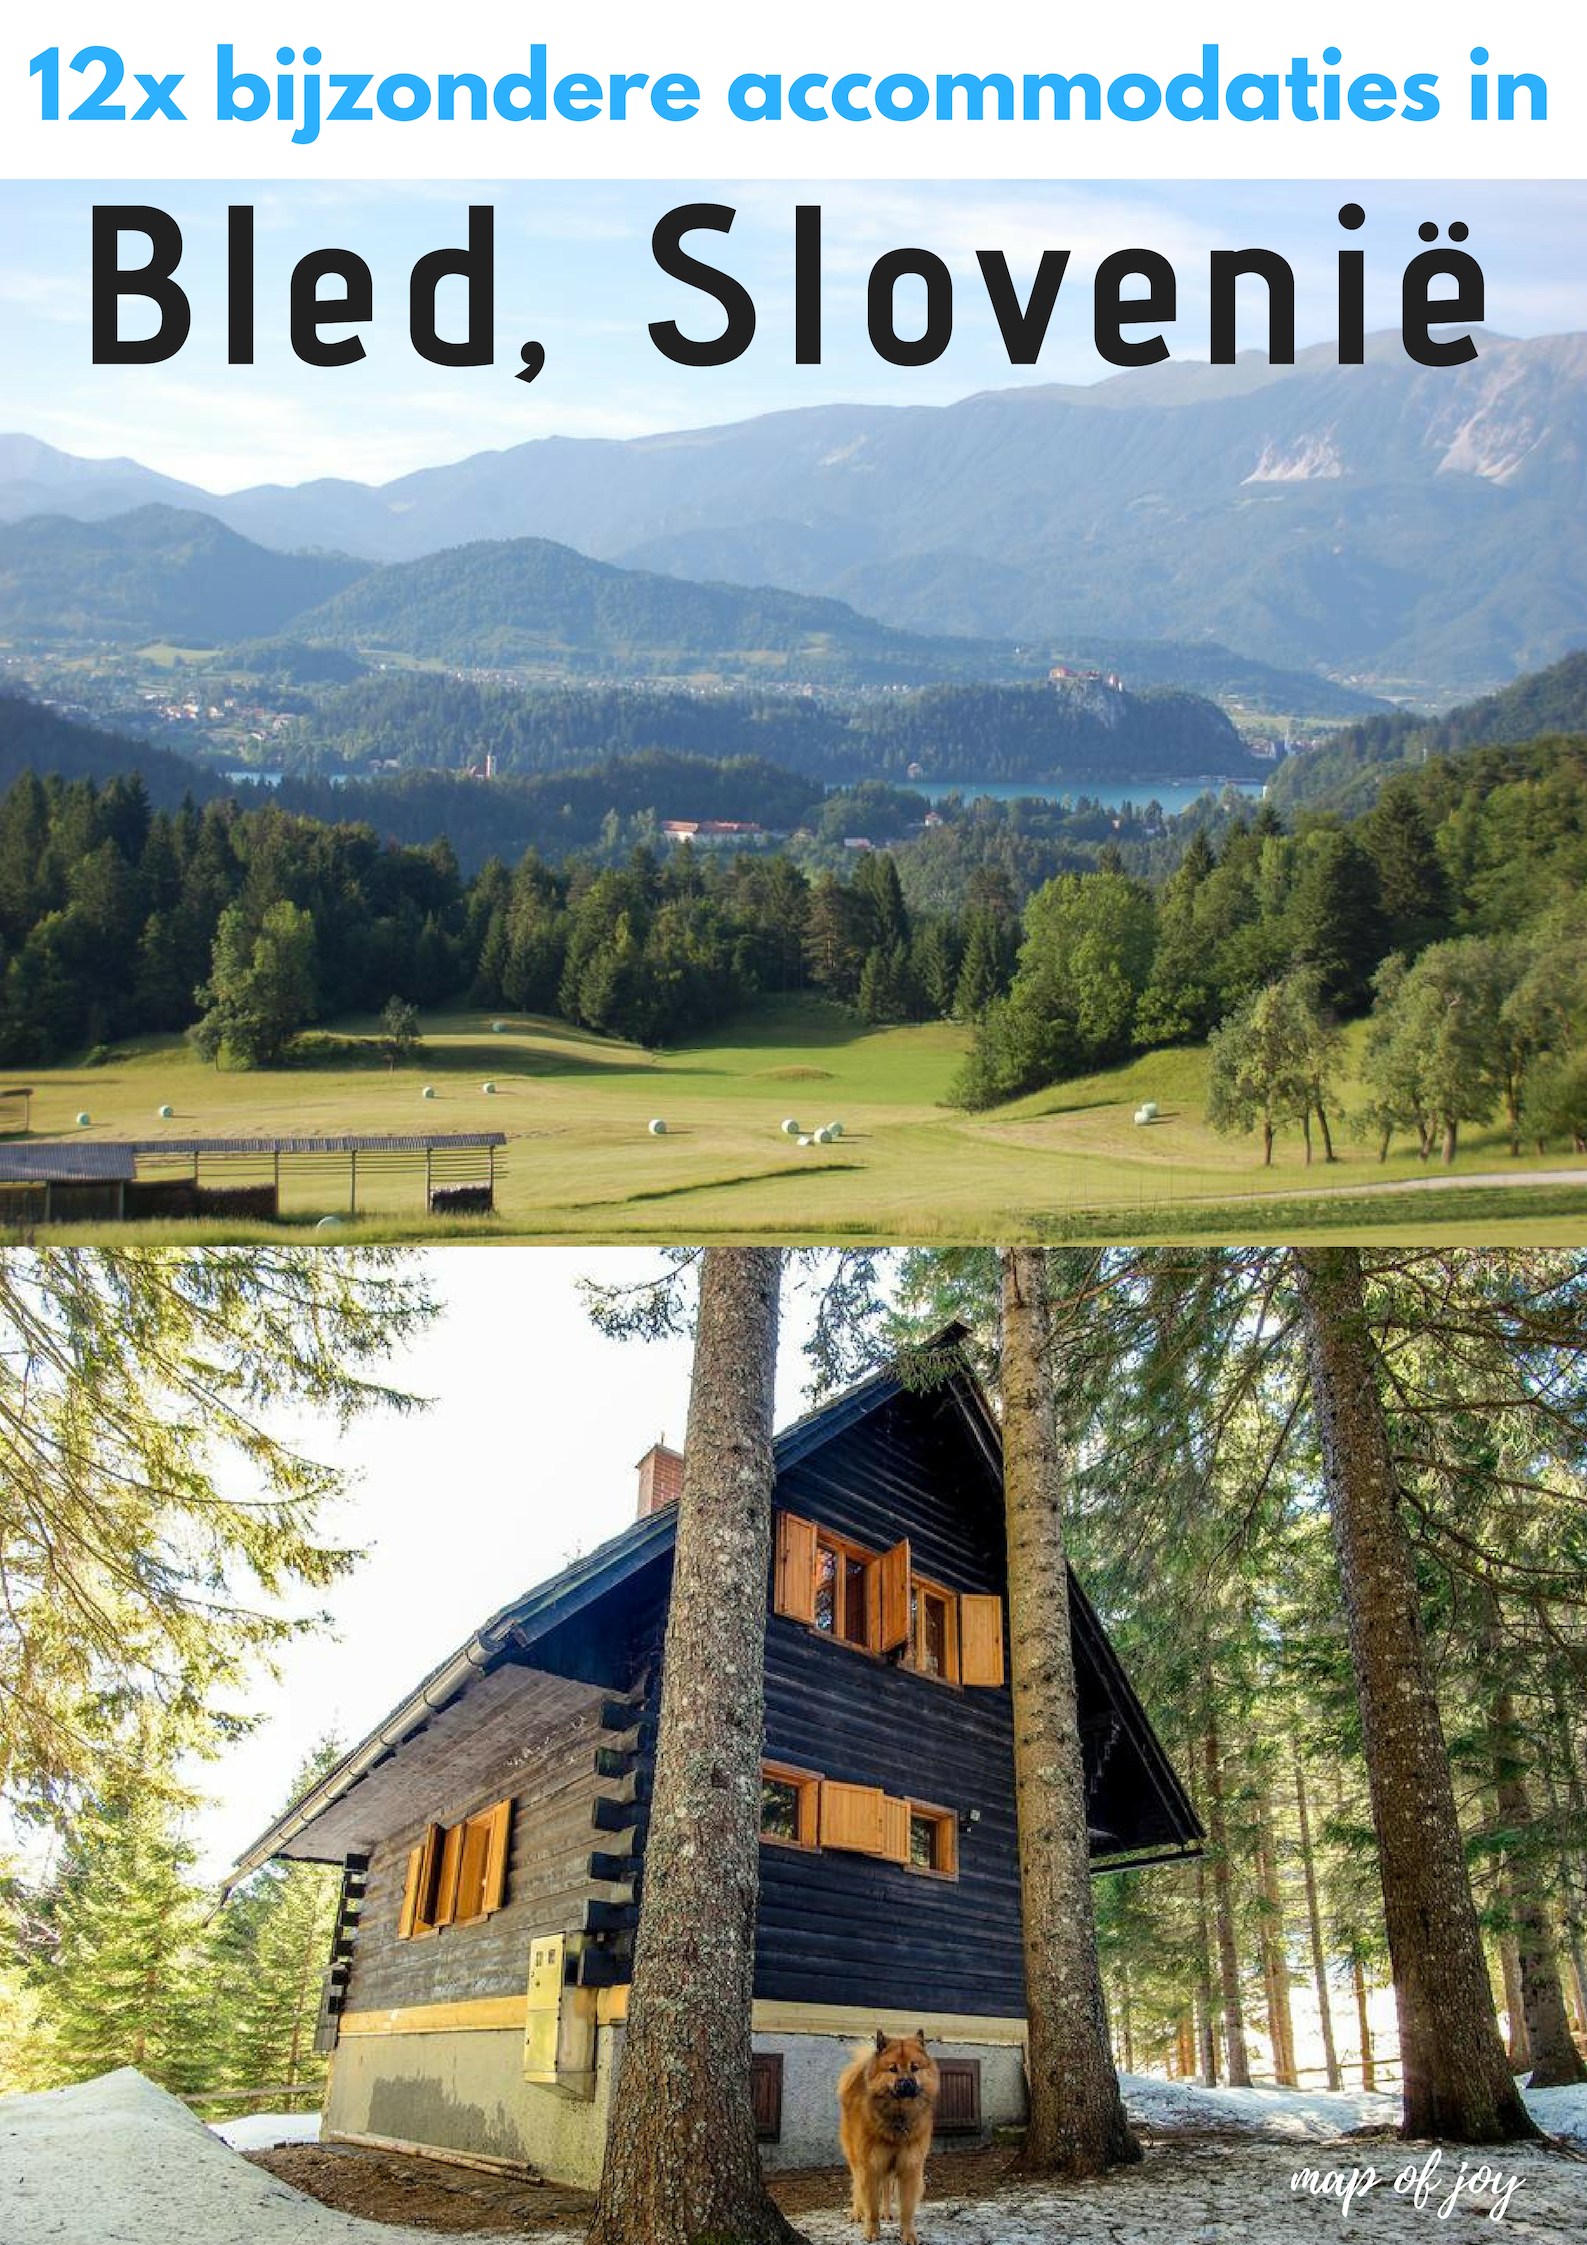 12x bijzondere accommodaties in Bled - Map of Joy